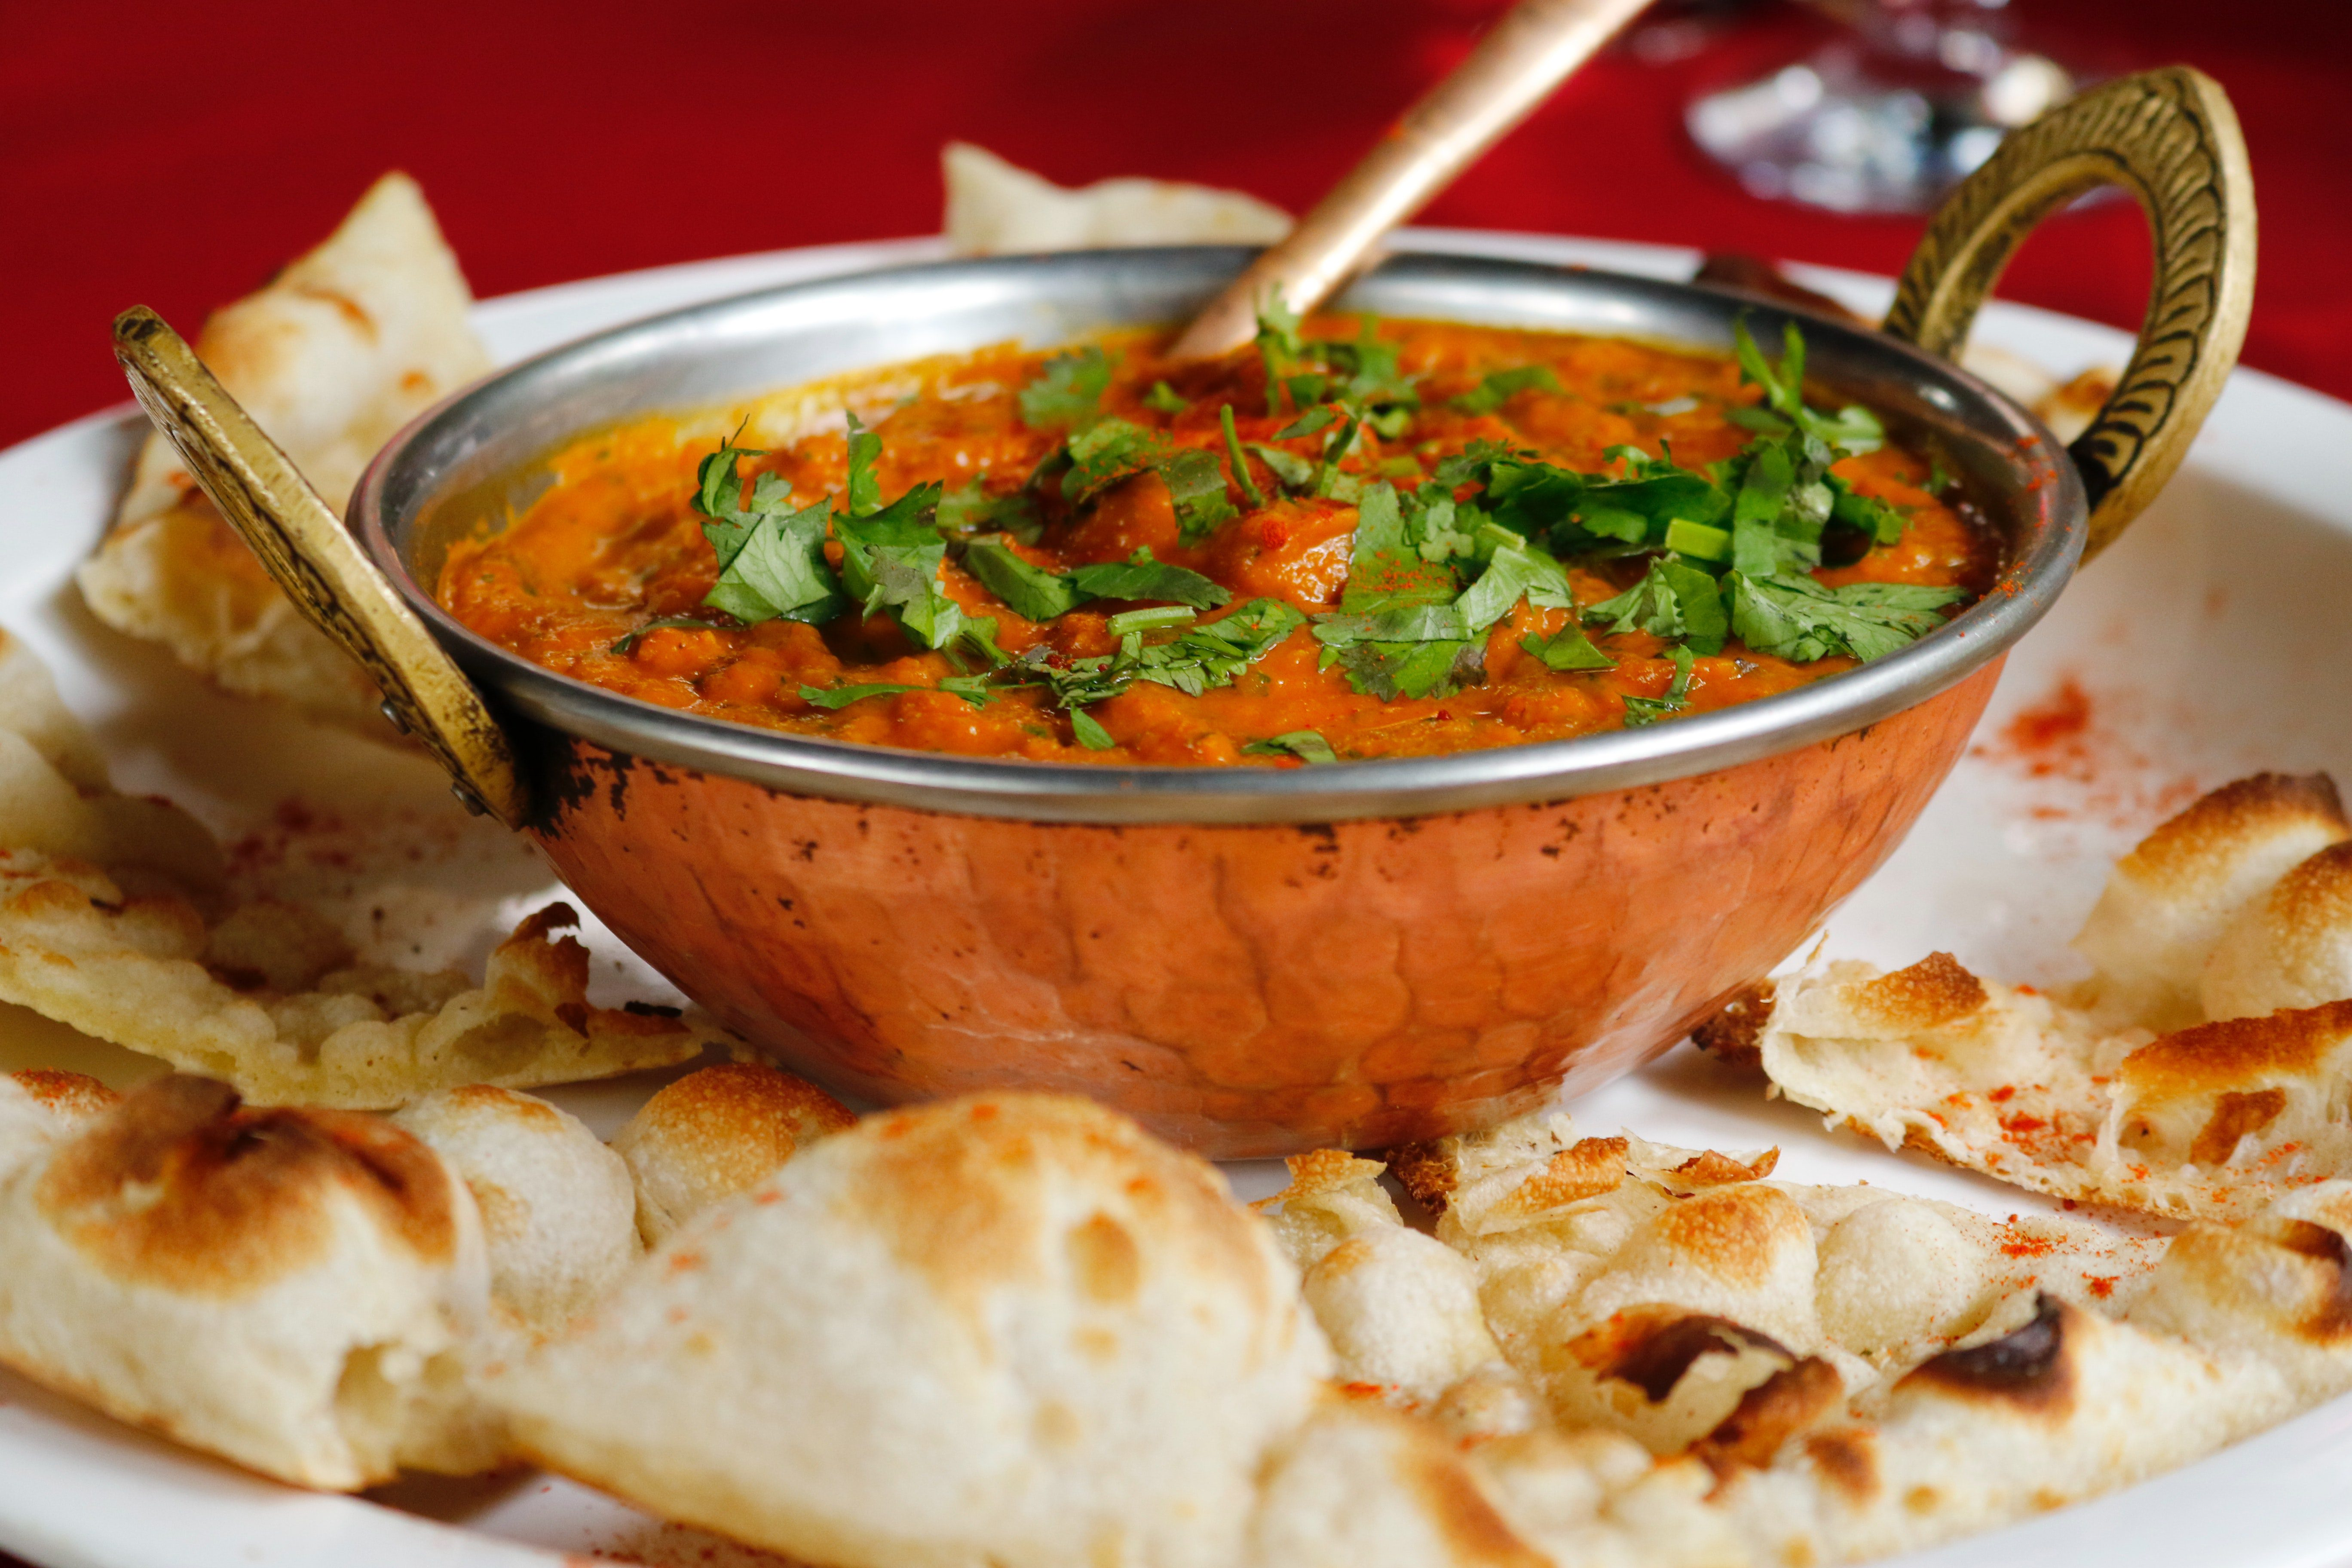 Visit These Top 9 Places For The Best Indian Street Food in Canada 1